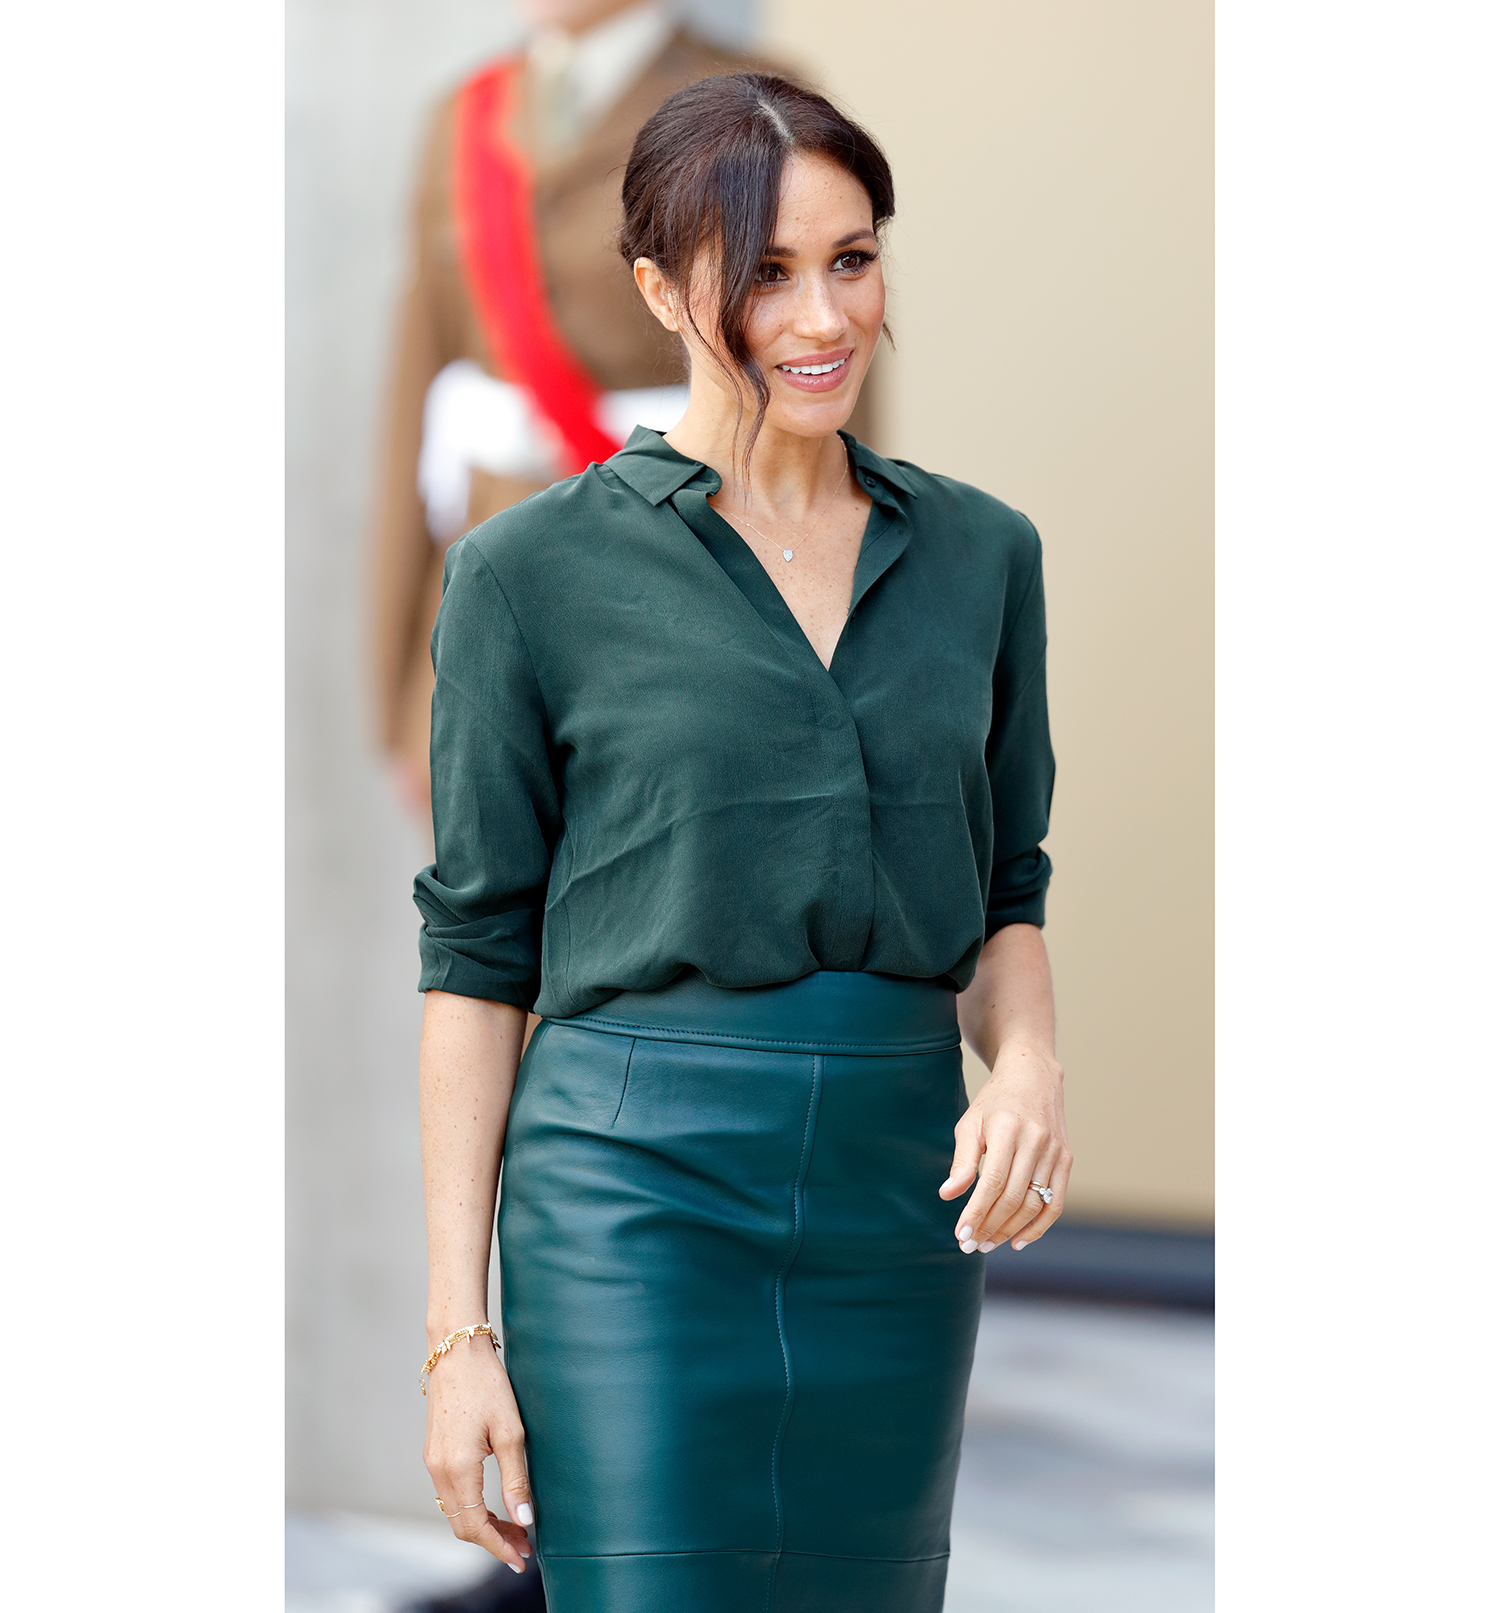 Meghan Markle Dress And Outfit Capsule Wardrobe Real Simple